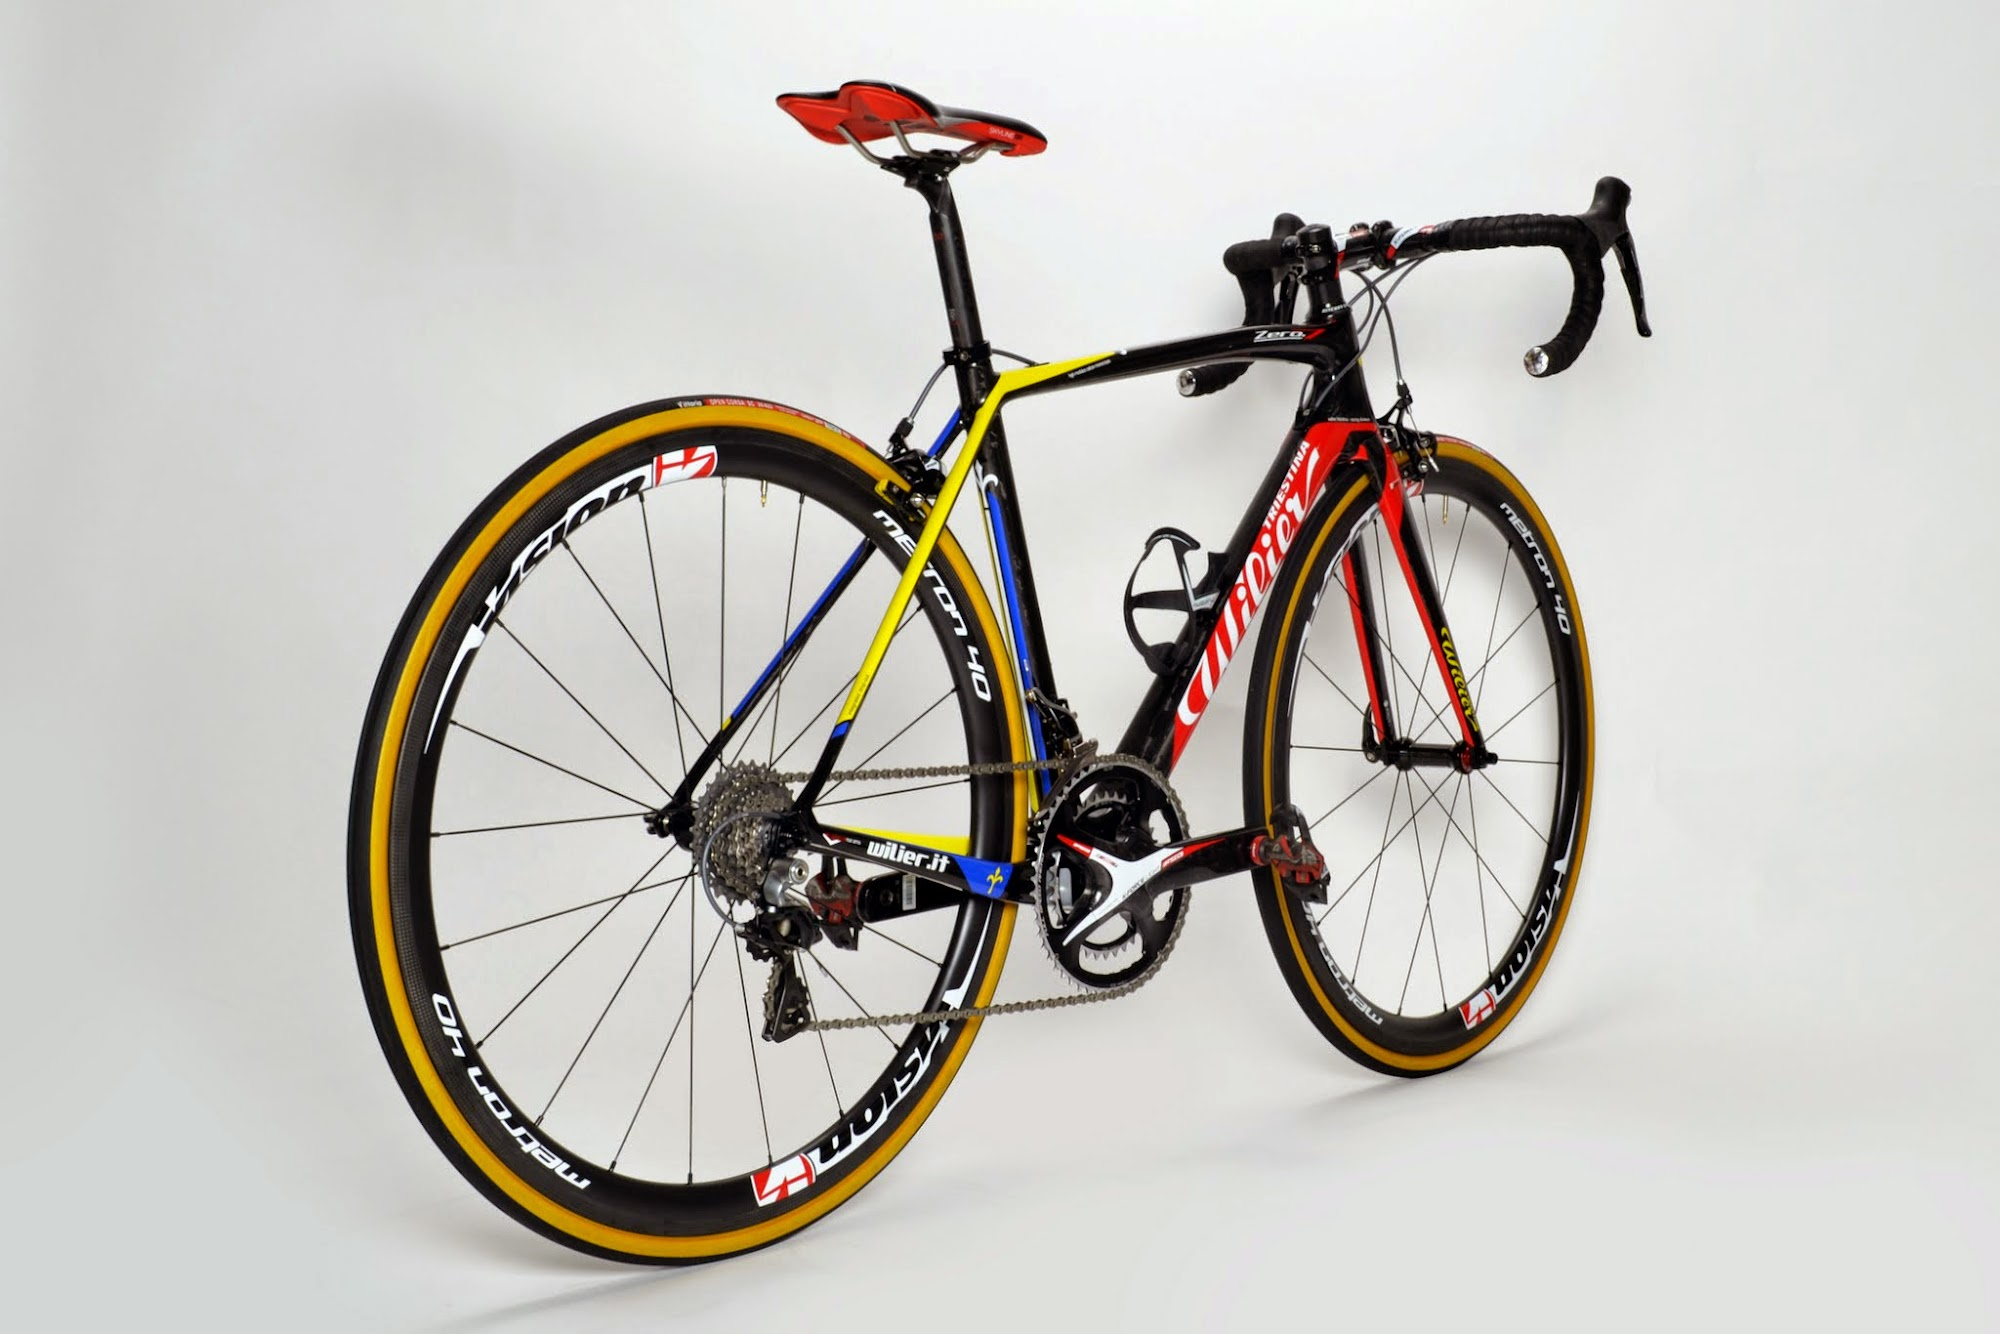 7142b830bb5 ... Team Colombia Wilier Triestina Zero.7 Complete Bike at twohubs.com ...